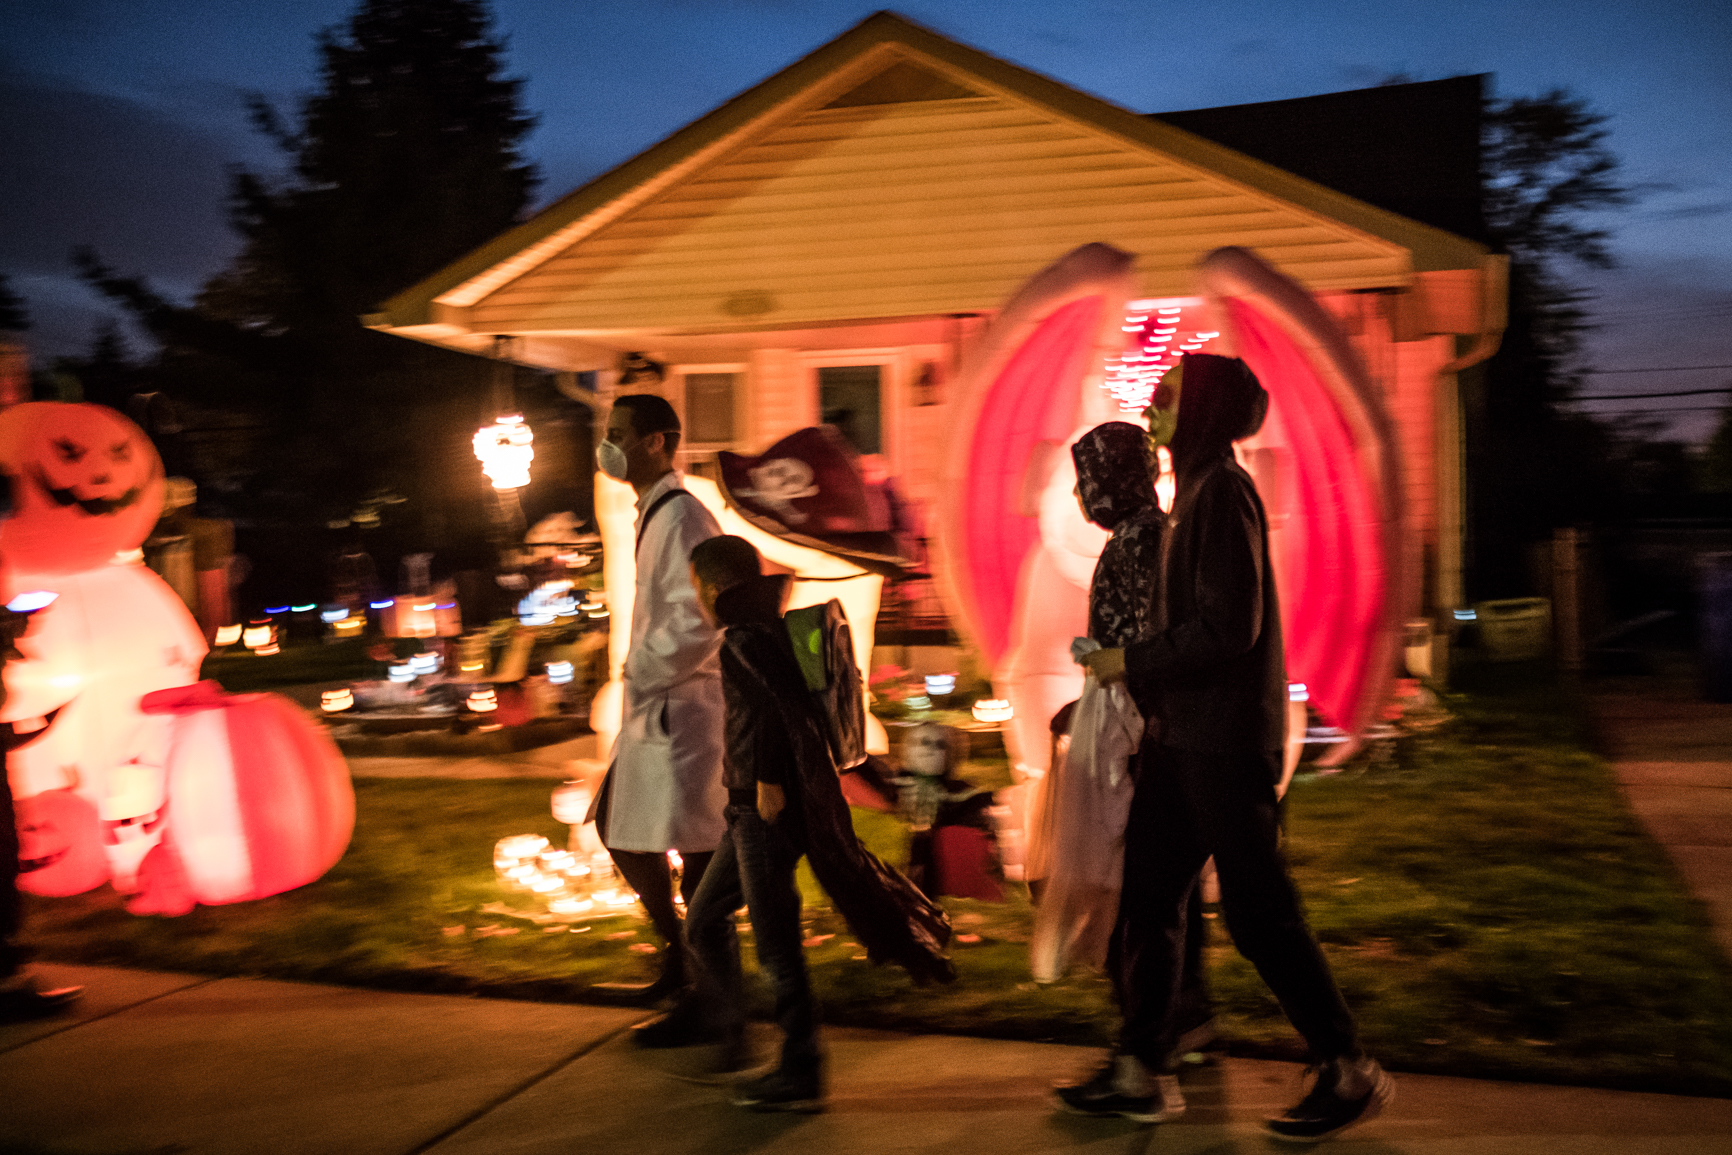 Legal Age Limits On Halloween Trick Or Treating Raise Concerns